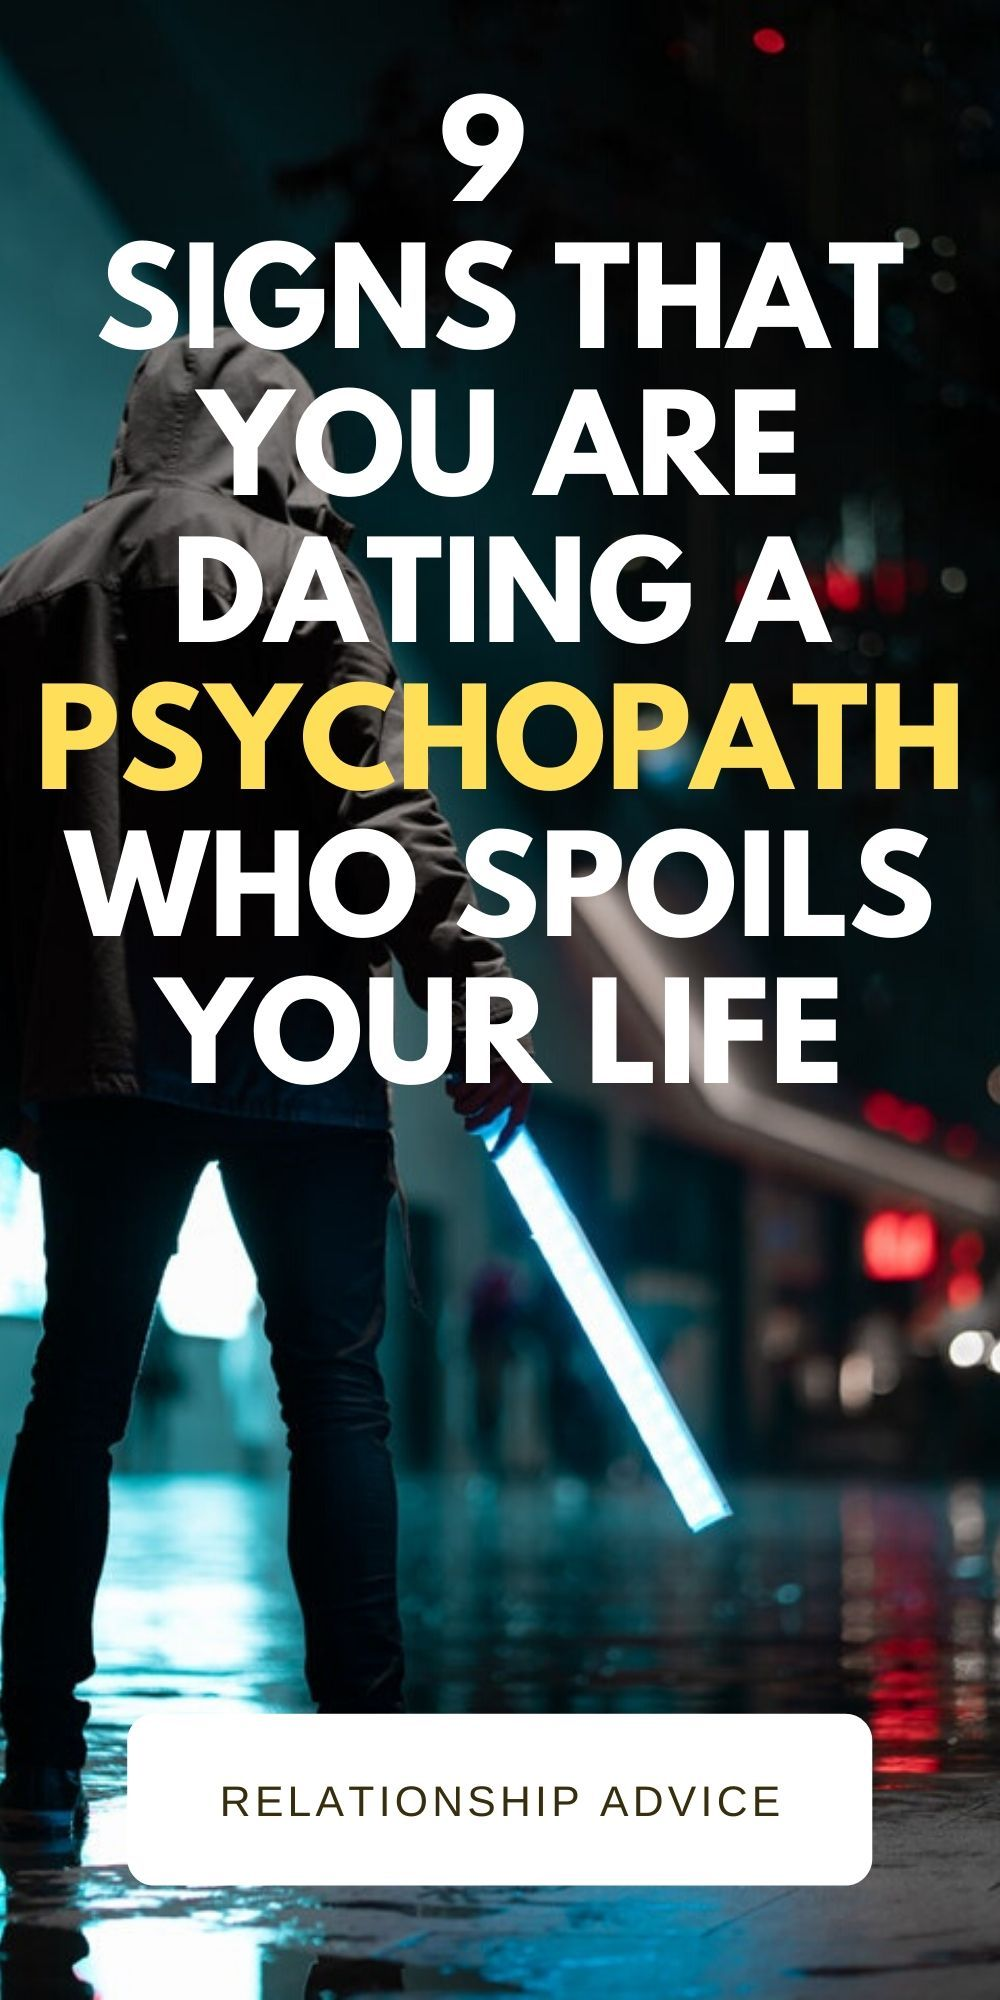 9 signs that you are dating a psychopath who spoils your life Did you know that psychopathy was one of the most difficult disorders to detectIndeed a psychopath can...